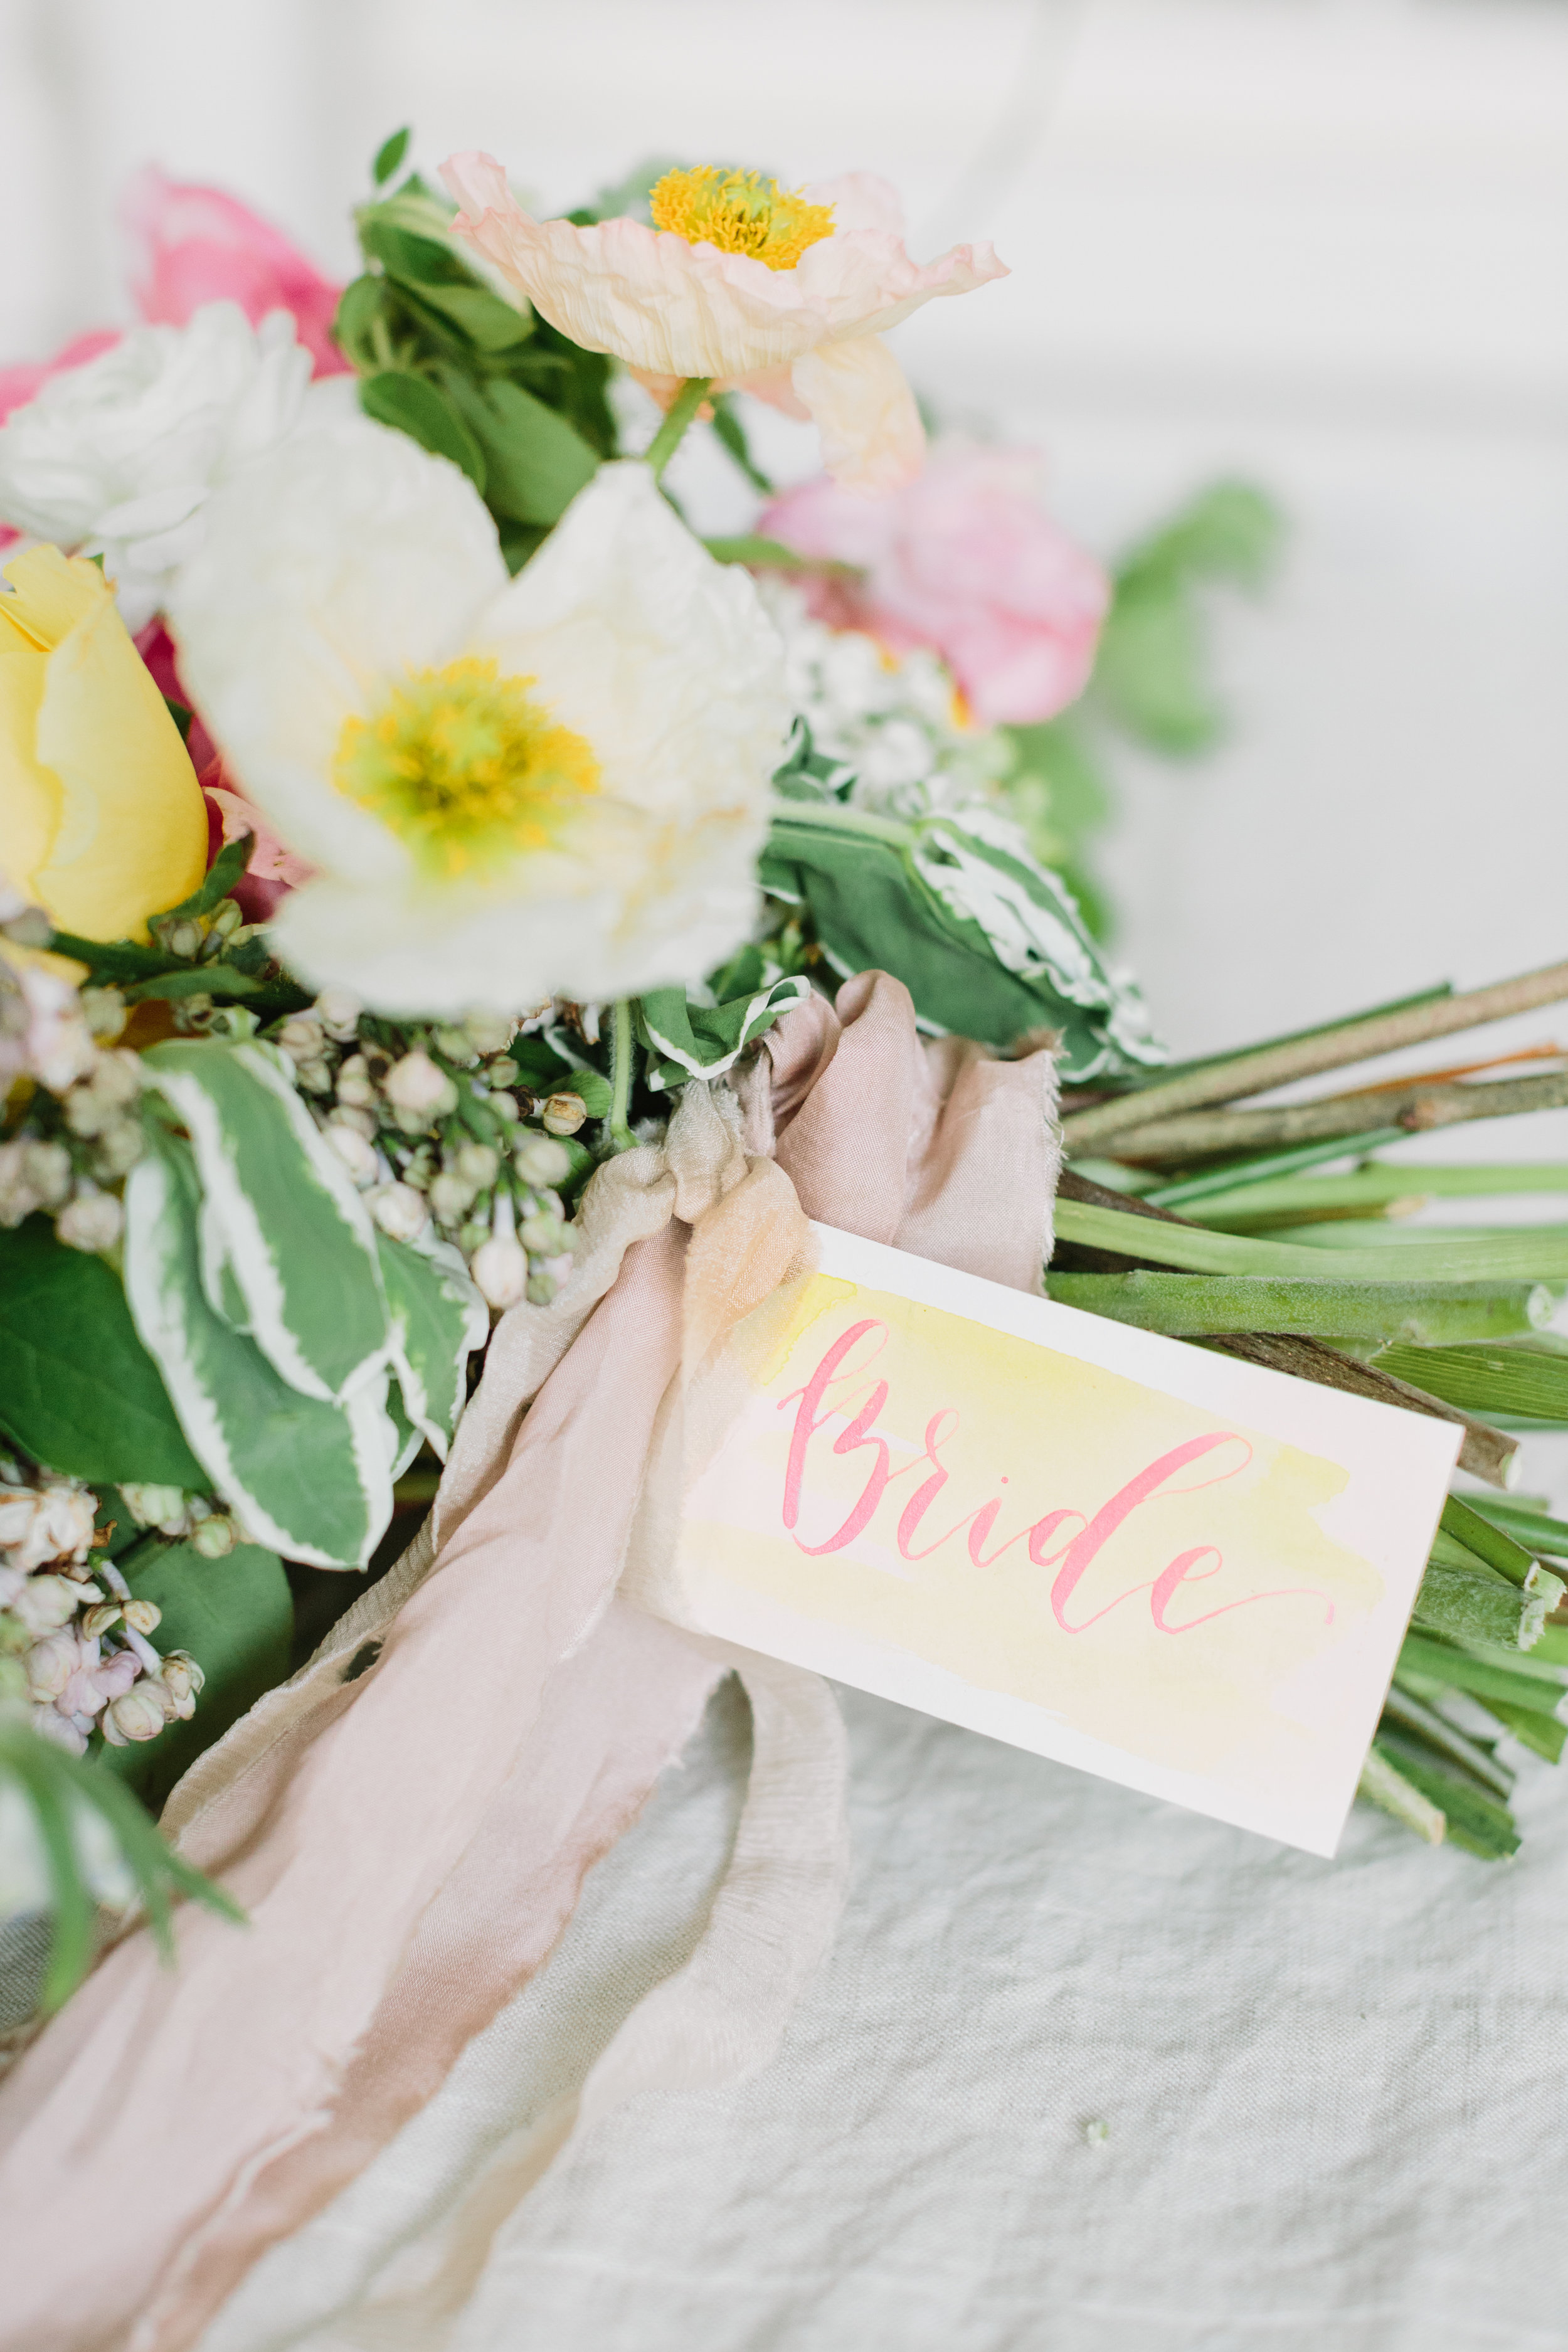 jessica-zimmerman-events-summer-wedding-colorful-bouquet-details.JPG